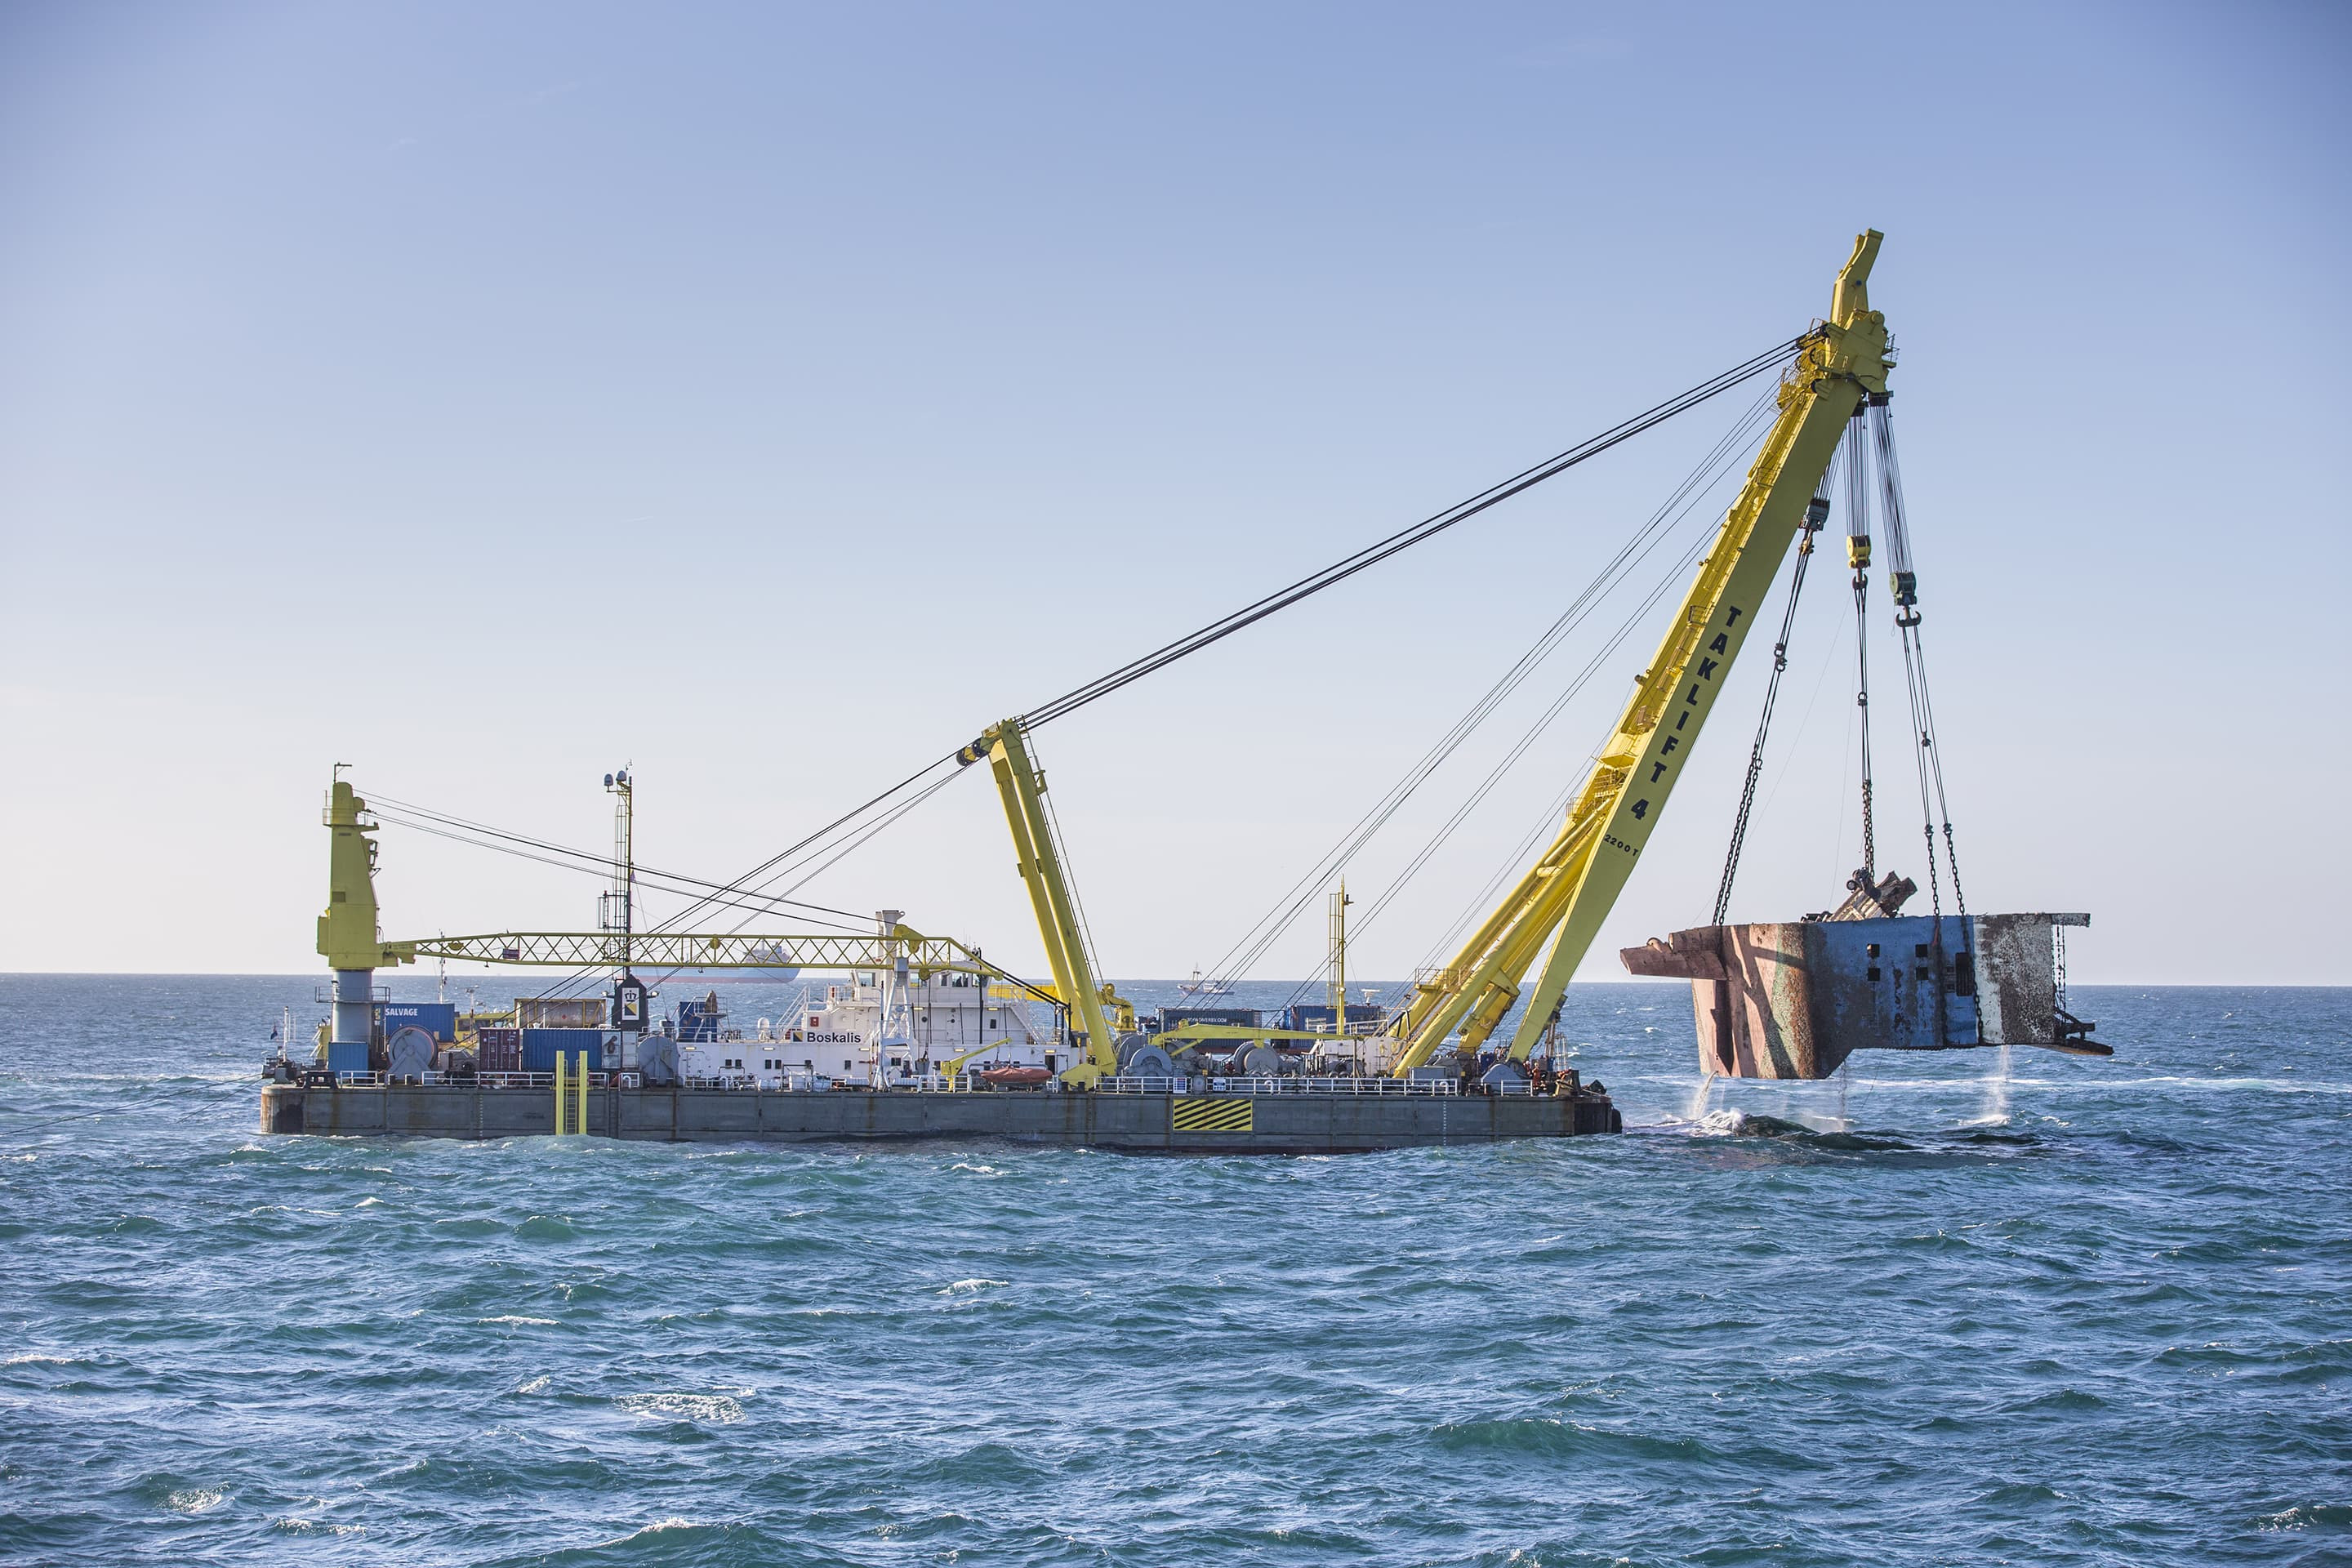 The floating sheerleg Taklift 4 is lifting one of the wreck sections